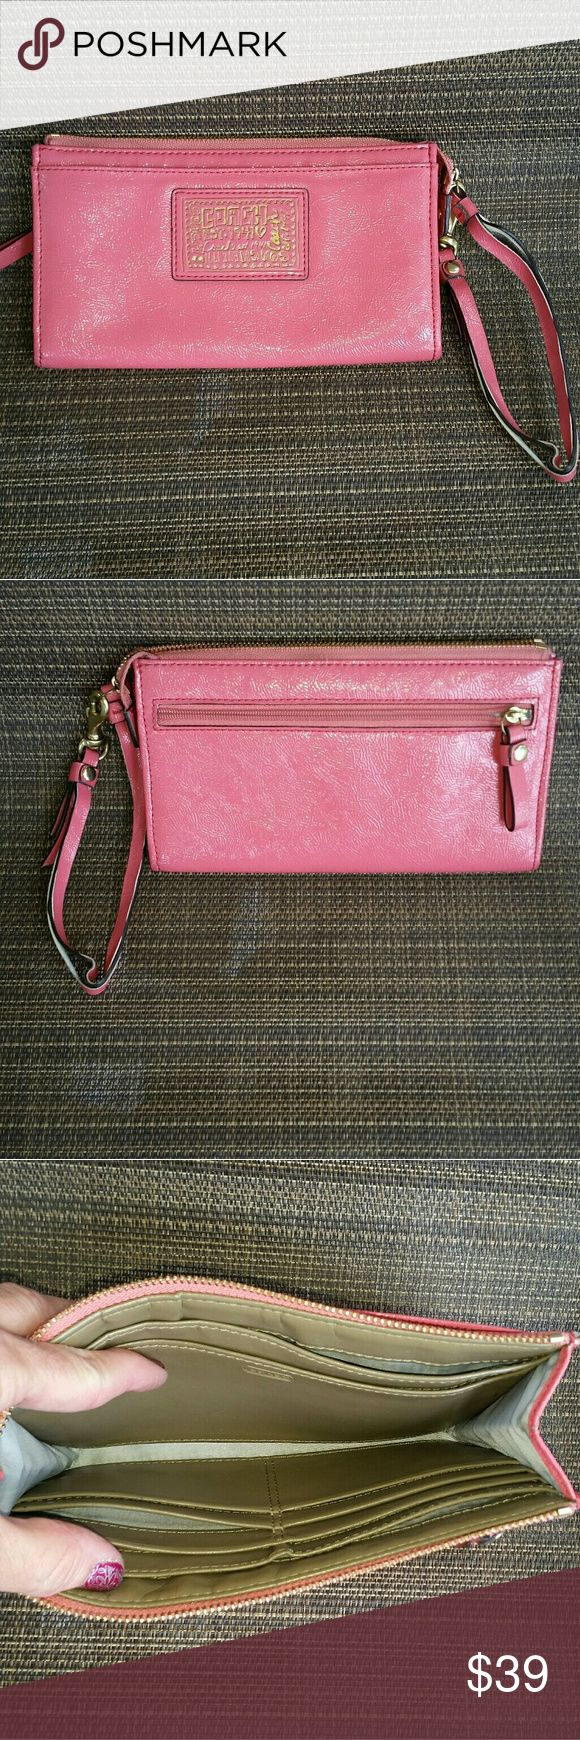 AUTHENTIC COACH POPPY This is a  authentic.coach poppy large wristlet wallet the strap is damage but the wallet itself n excellent conditon 9x7 smoke free home no trades price is firm. Coach Poppy Bags Wallets